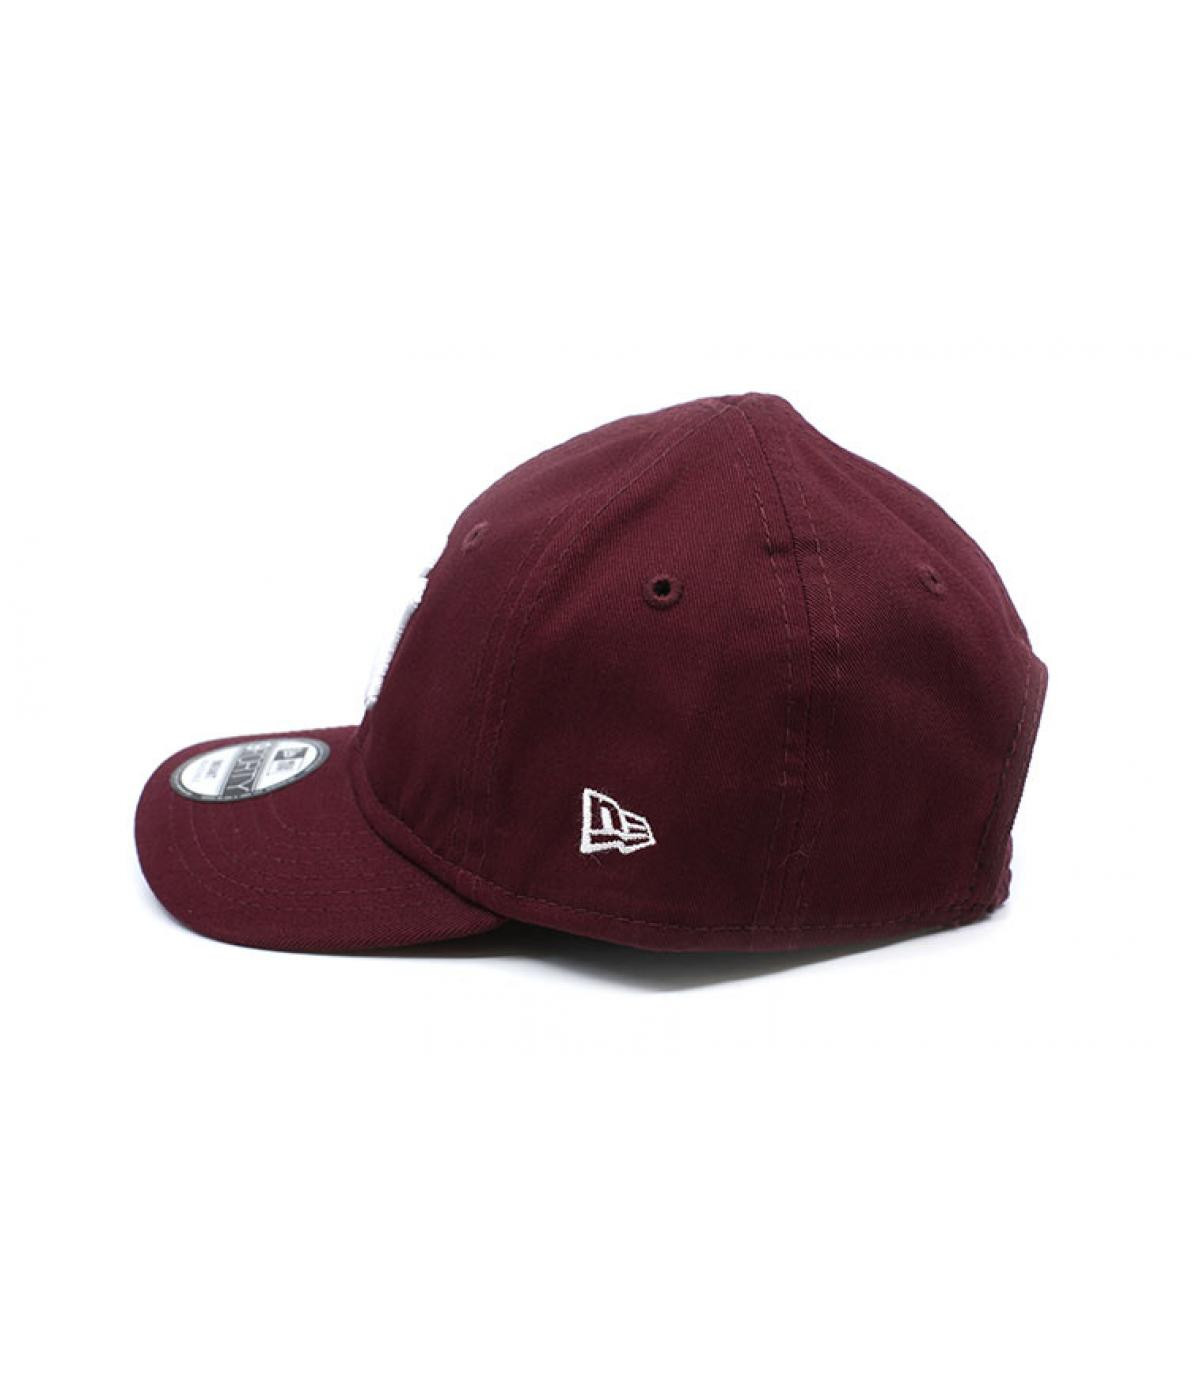 Détails Casquette Baby League Ess NY 9Forty maroon - image 4